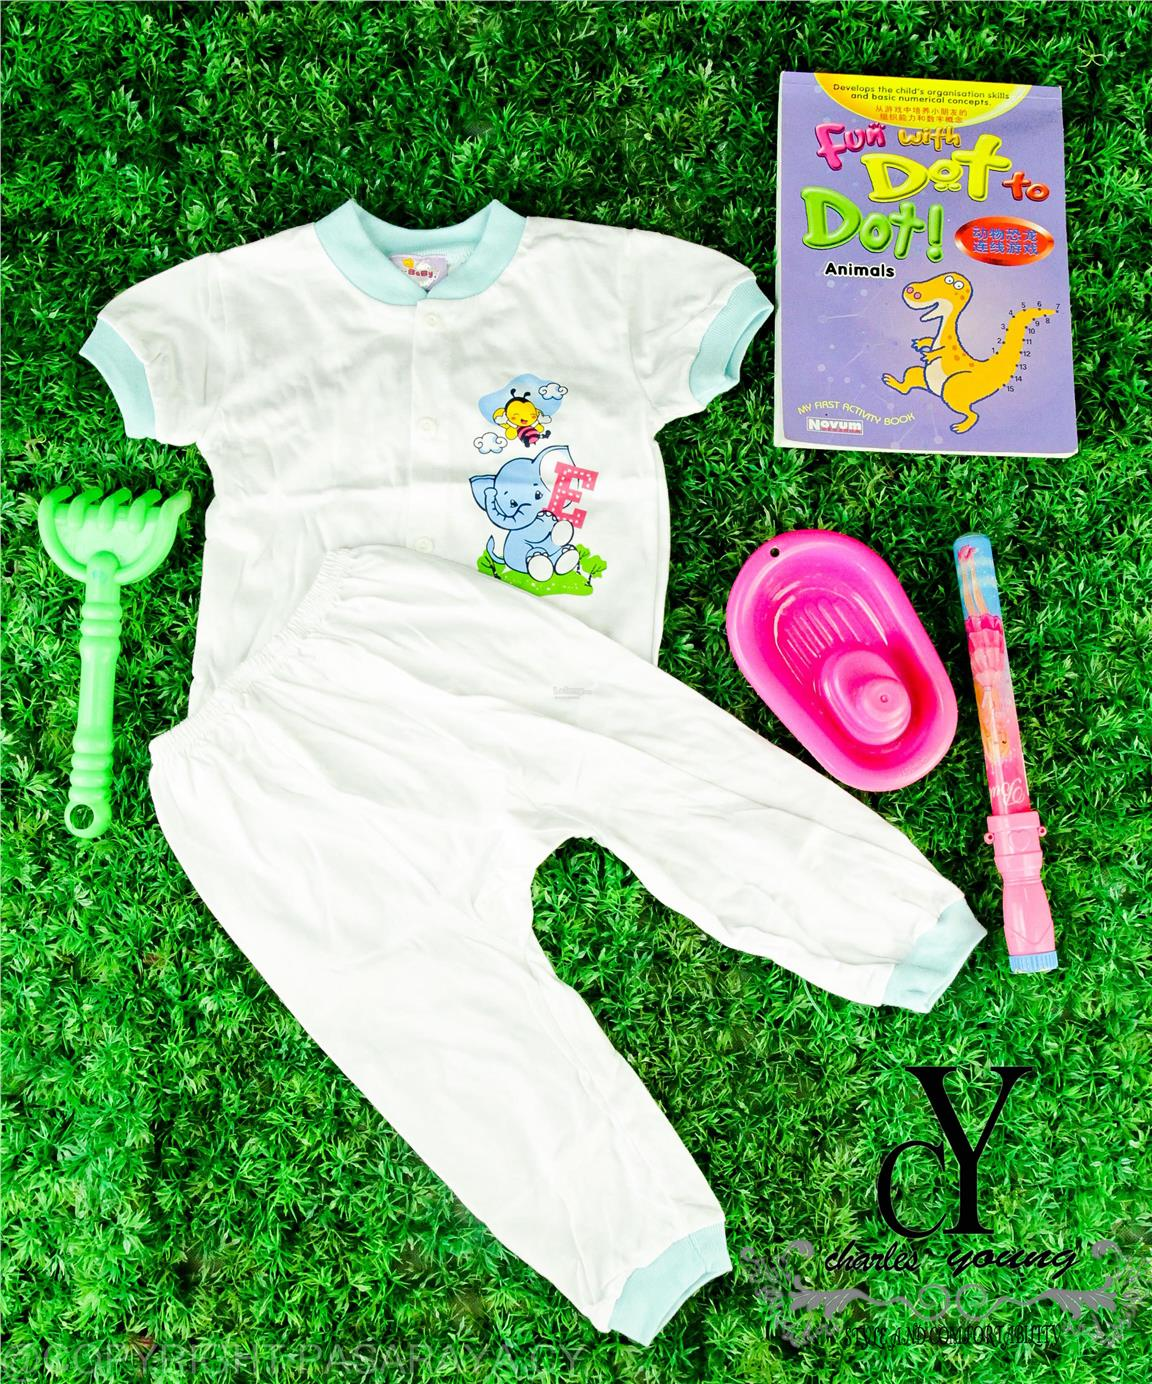 Baby suit set shirt pant cotton lo end 10 31 2017 10 15 pm for Long sleep shirts cotton